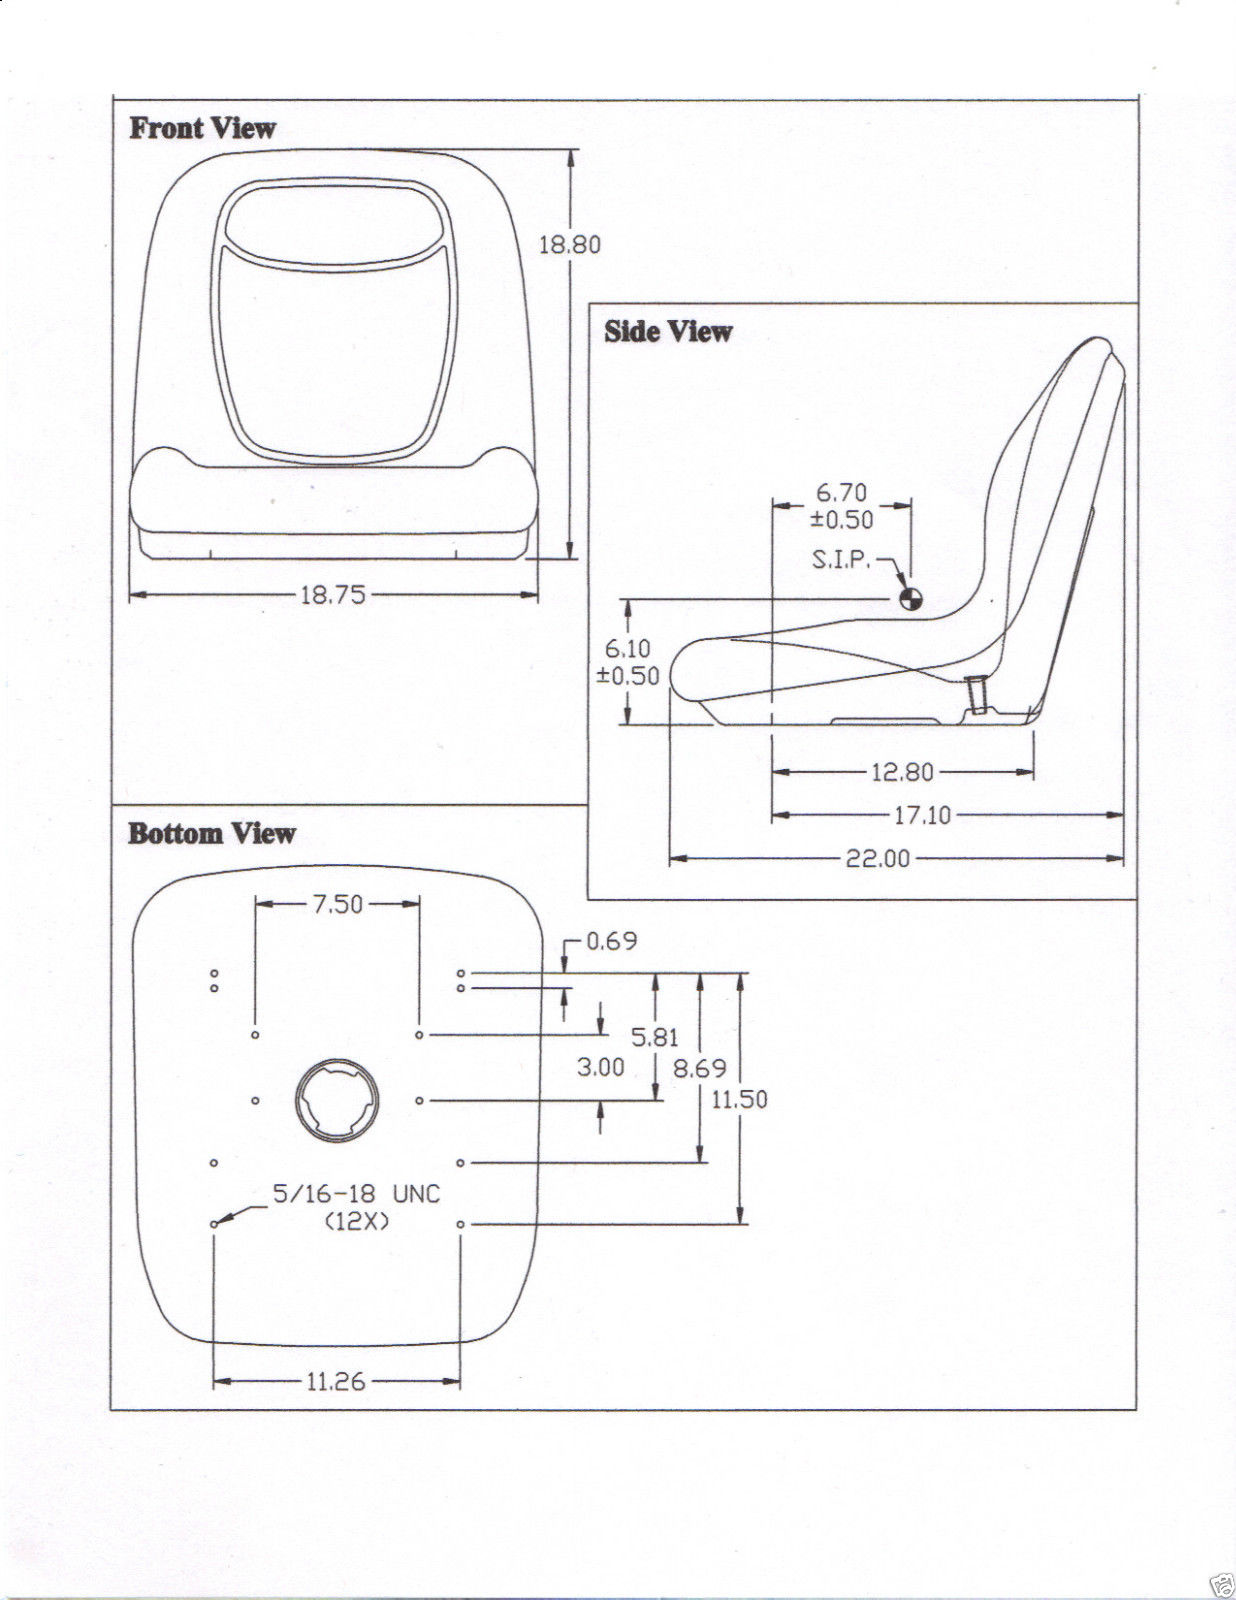 John Deere Gator Hpx 4x4 Wiring Diagram 39 Images F935 Diagrams 656877 Xuv 850d Pair Of High Back Seats Gatorshpx 4x26x4 Tx Th Jr 171240542583